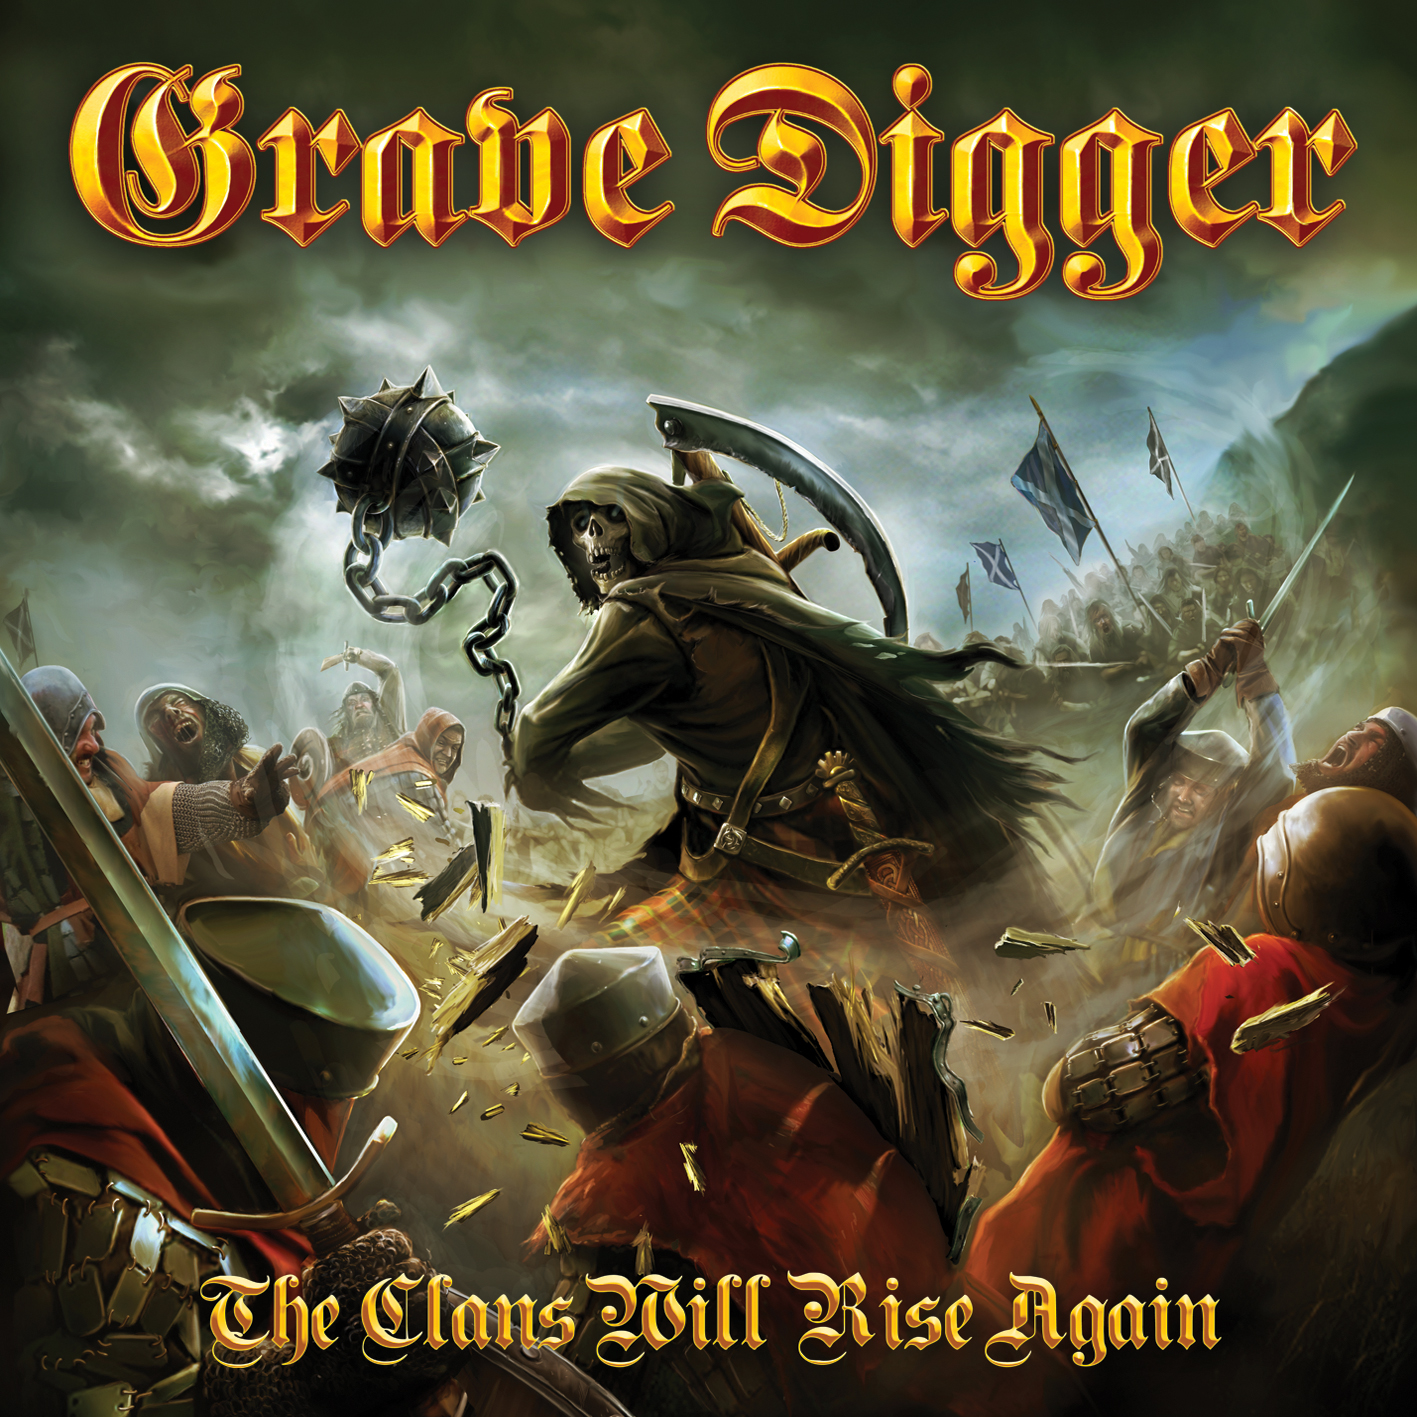 Grave Digger, The Clans Will Rise Again, Cover